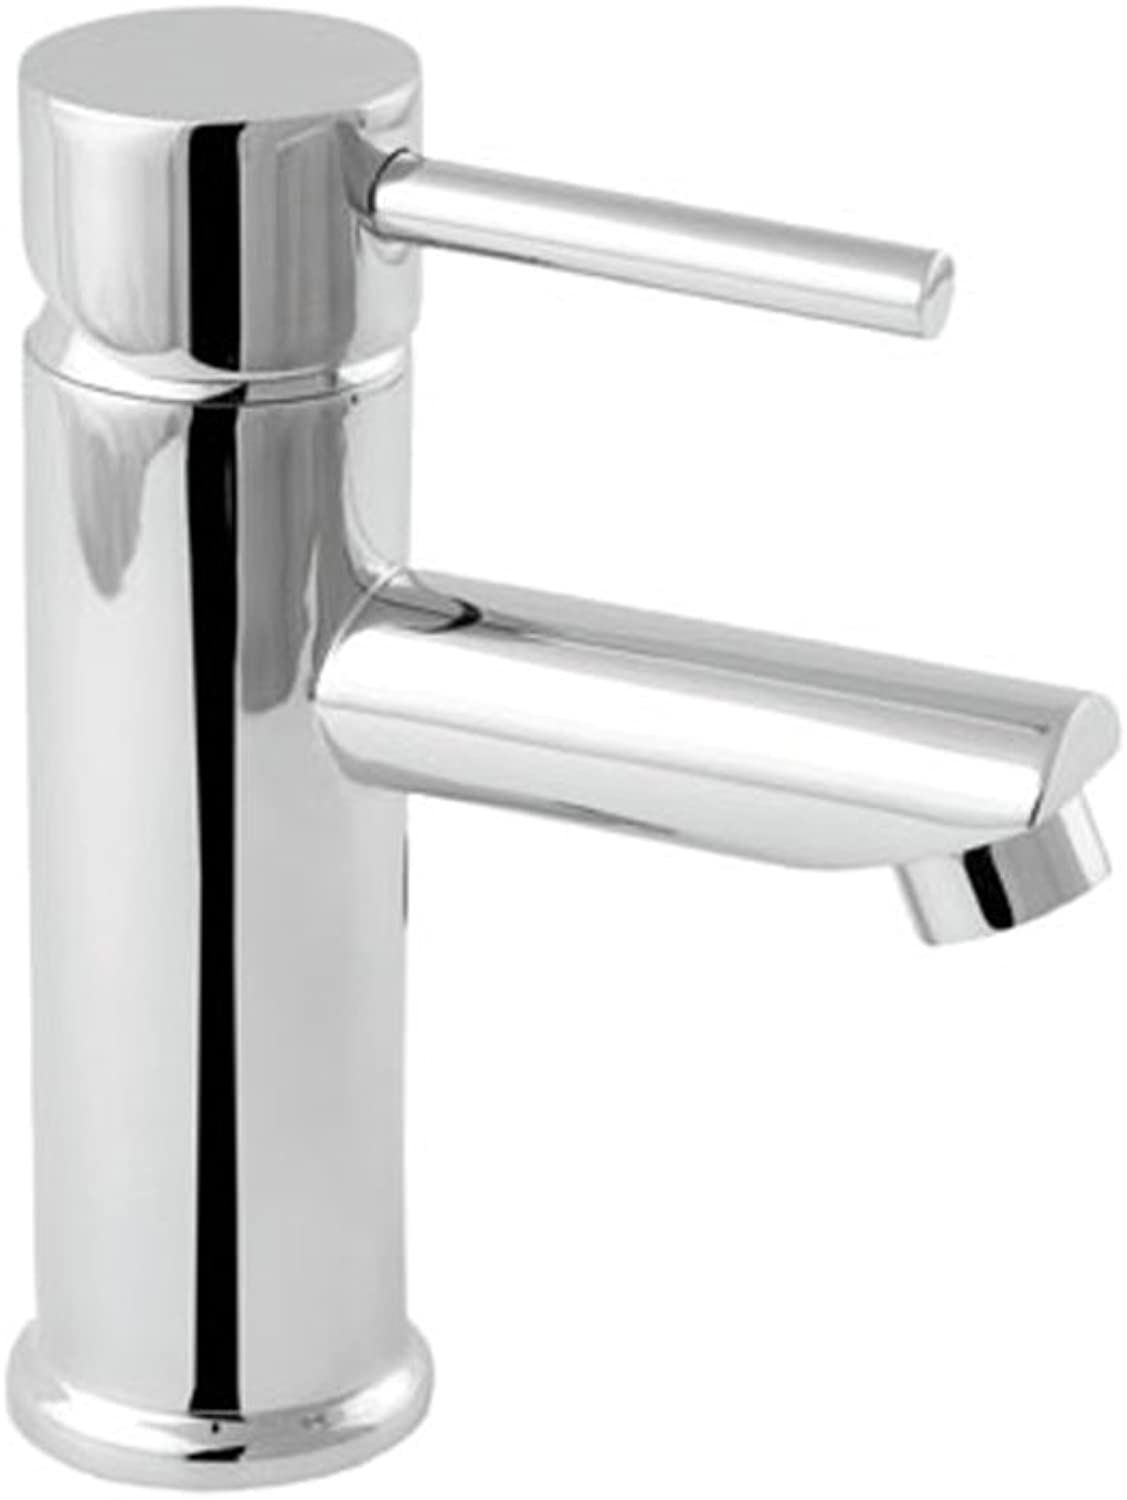 Deva INS113 Insignia Mono Basin Mixer Tap with Press Top Waste Chrome Finish